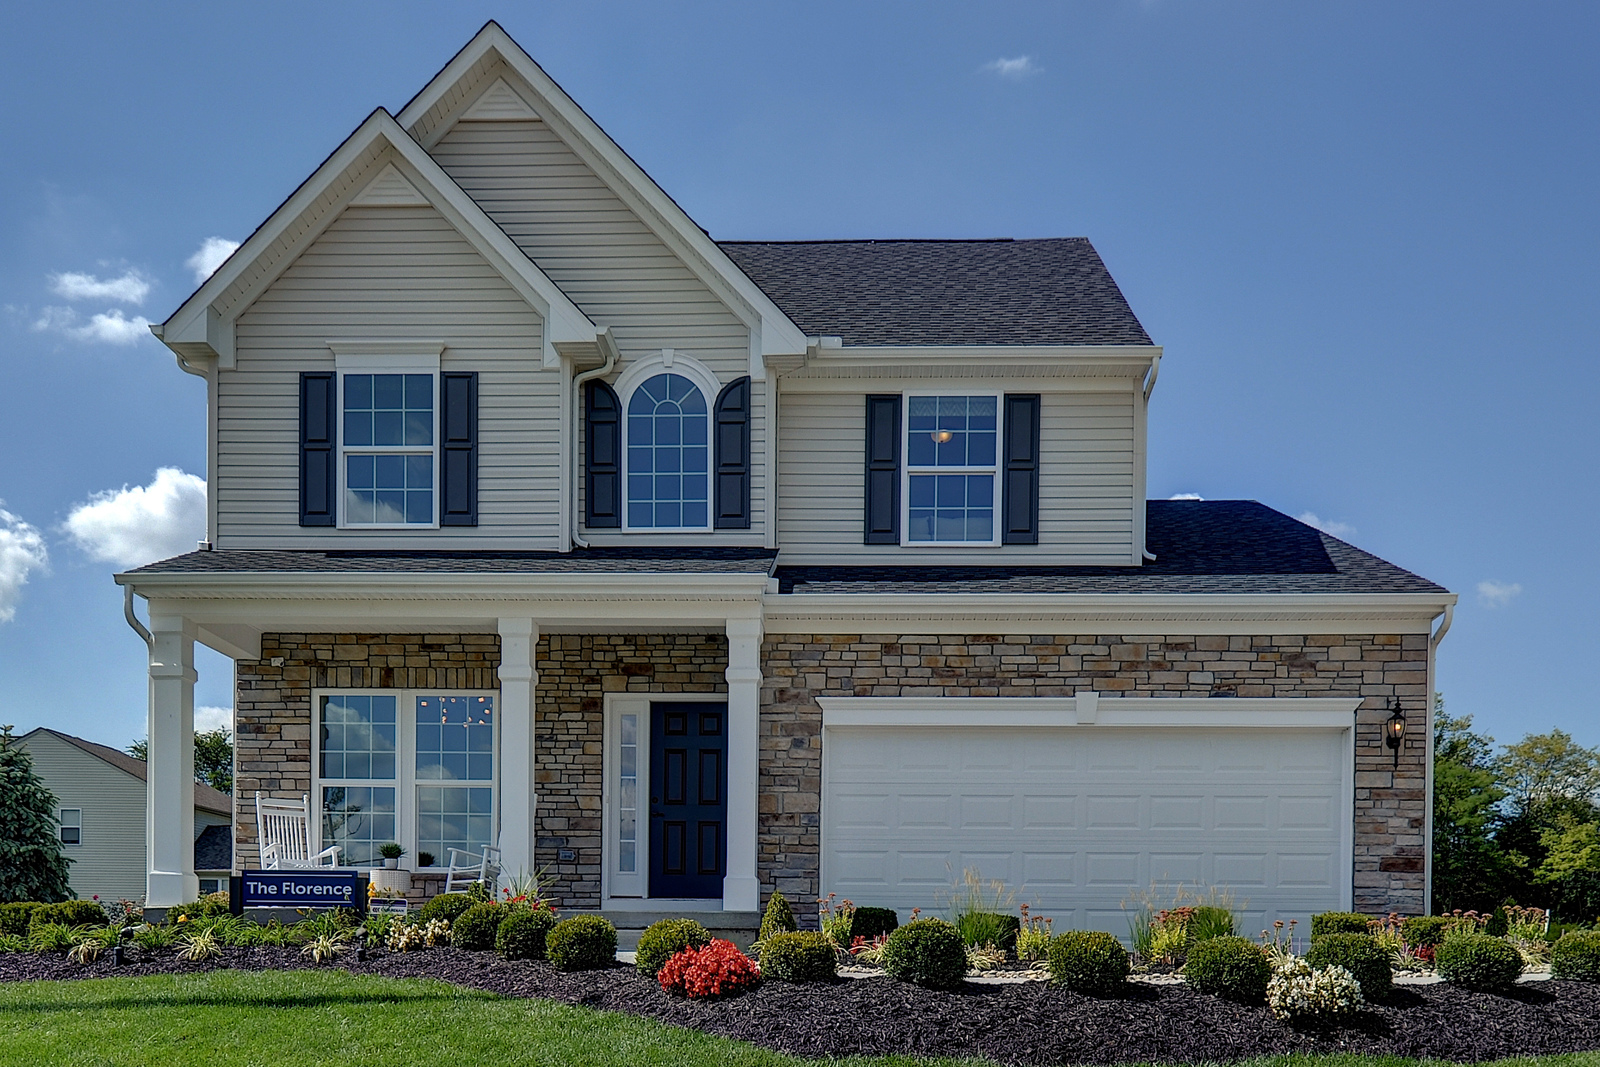 New Homes For Sale At Oakdale In North Chesterfield Va Within The